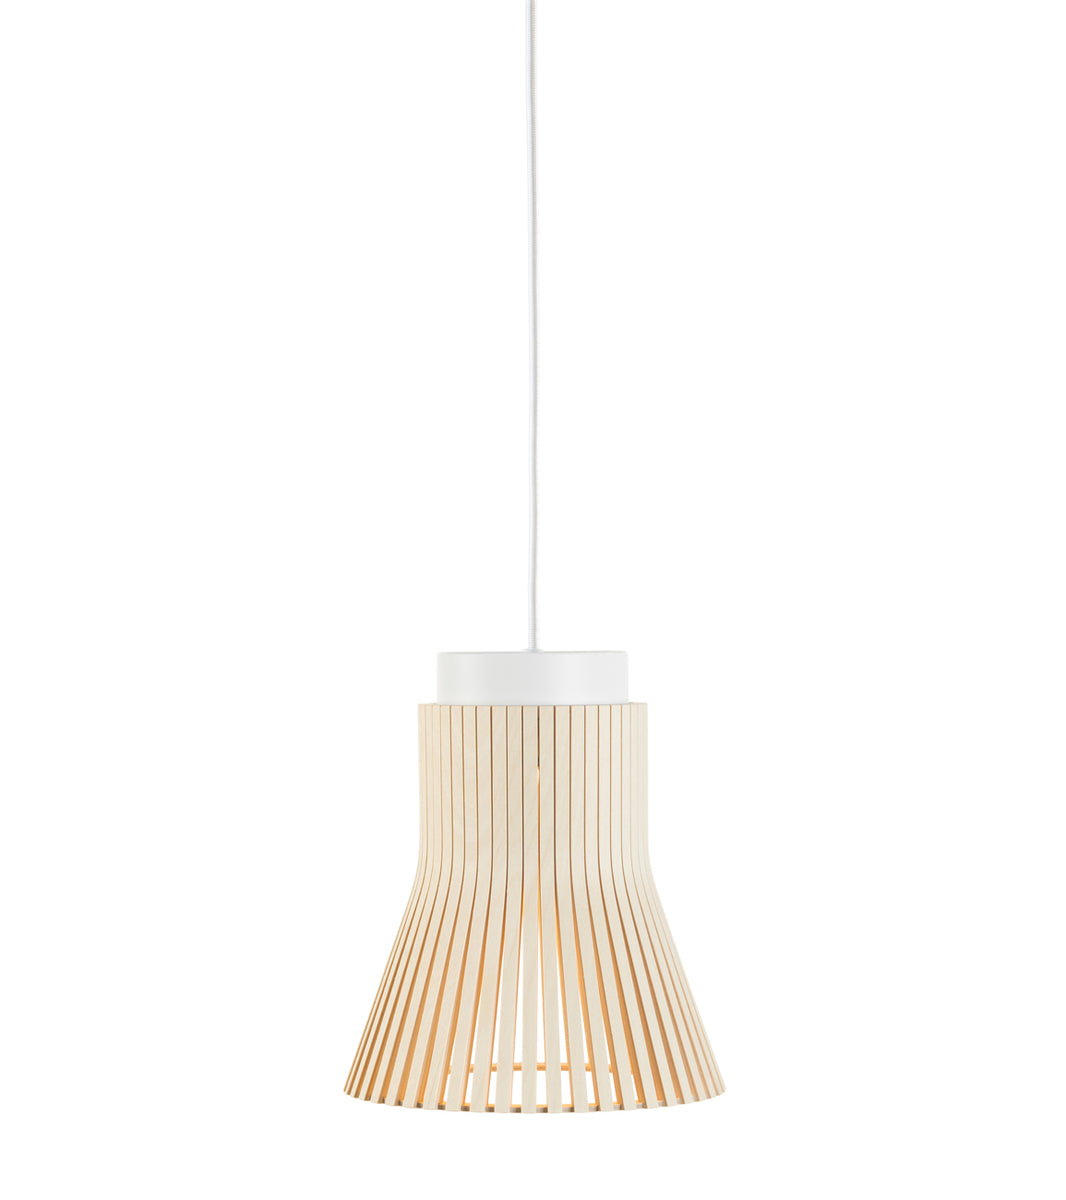 Seppo Koho Pendant light Secto Finland Petite 4600 White